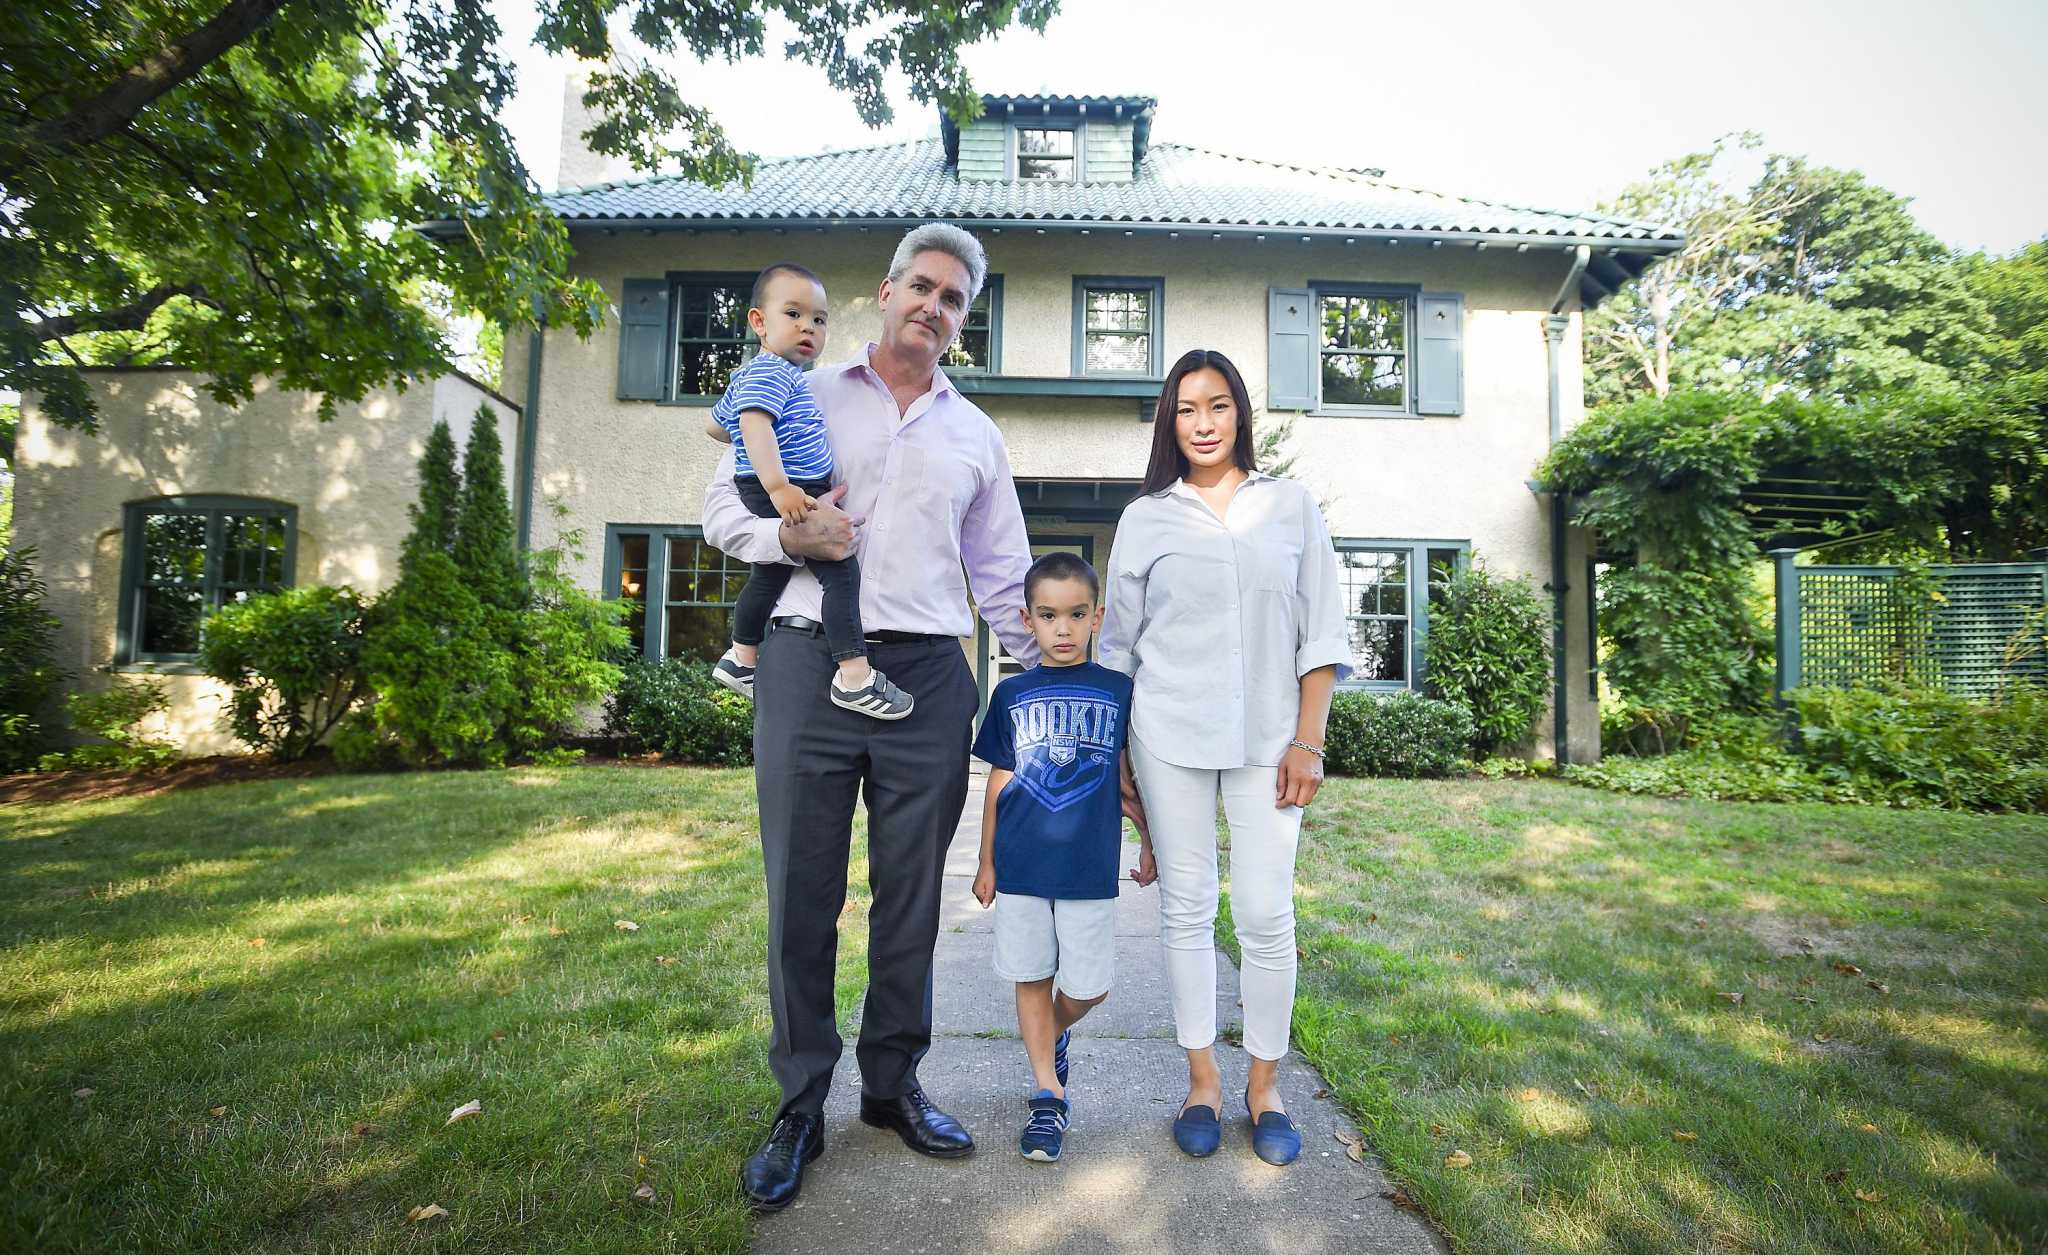 Fairfield County S Single Family Housing Still Recovering From Recession Ctinsider Com